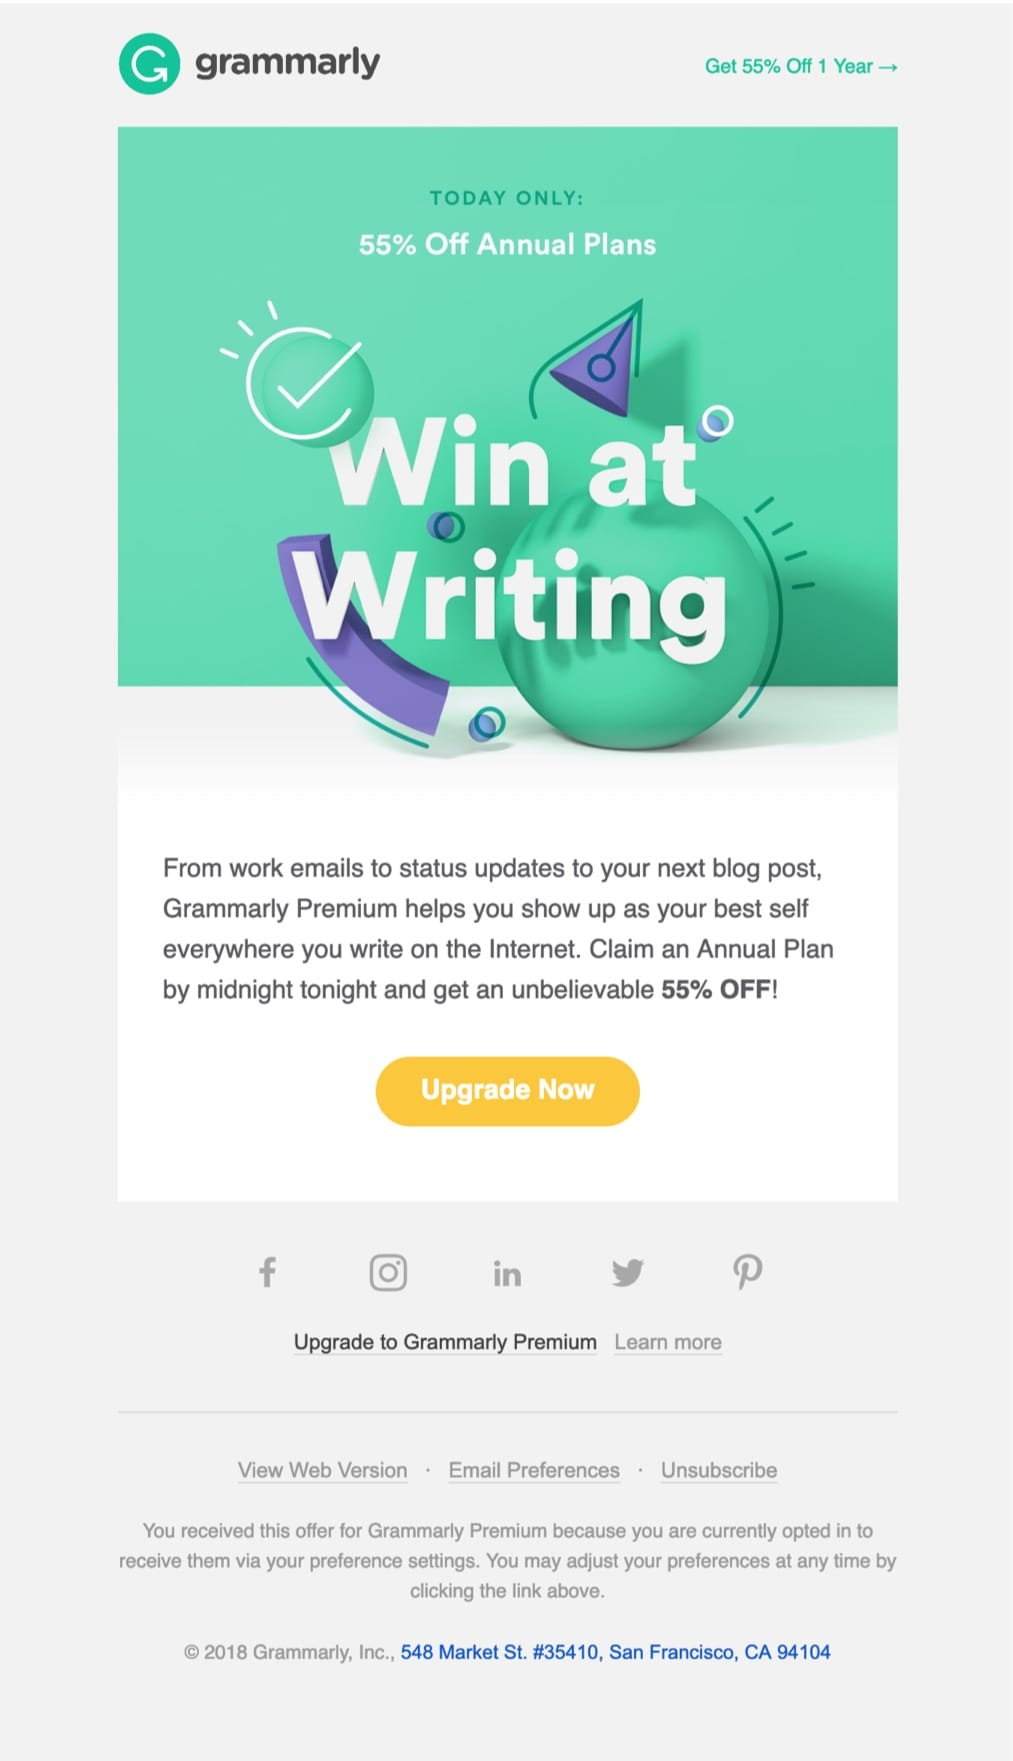 promotional email example grammarly (sale email)